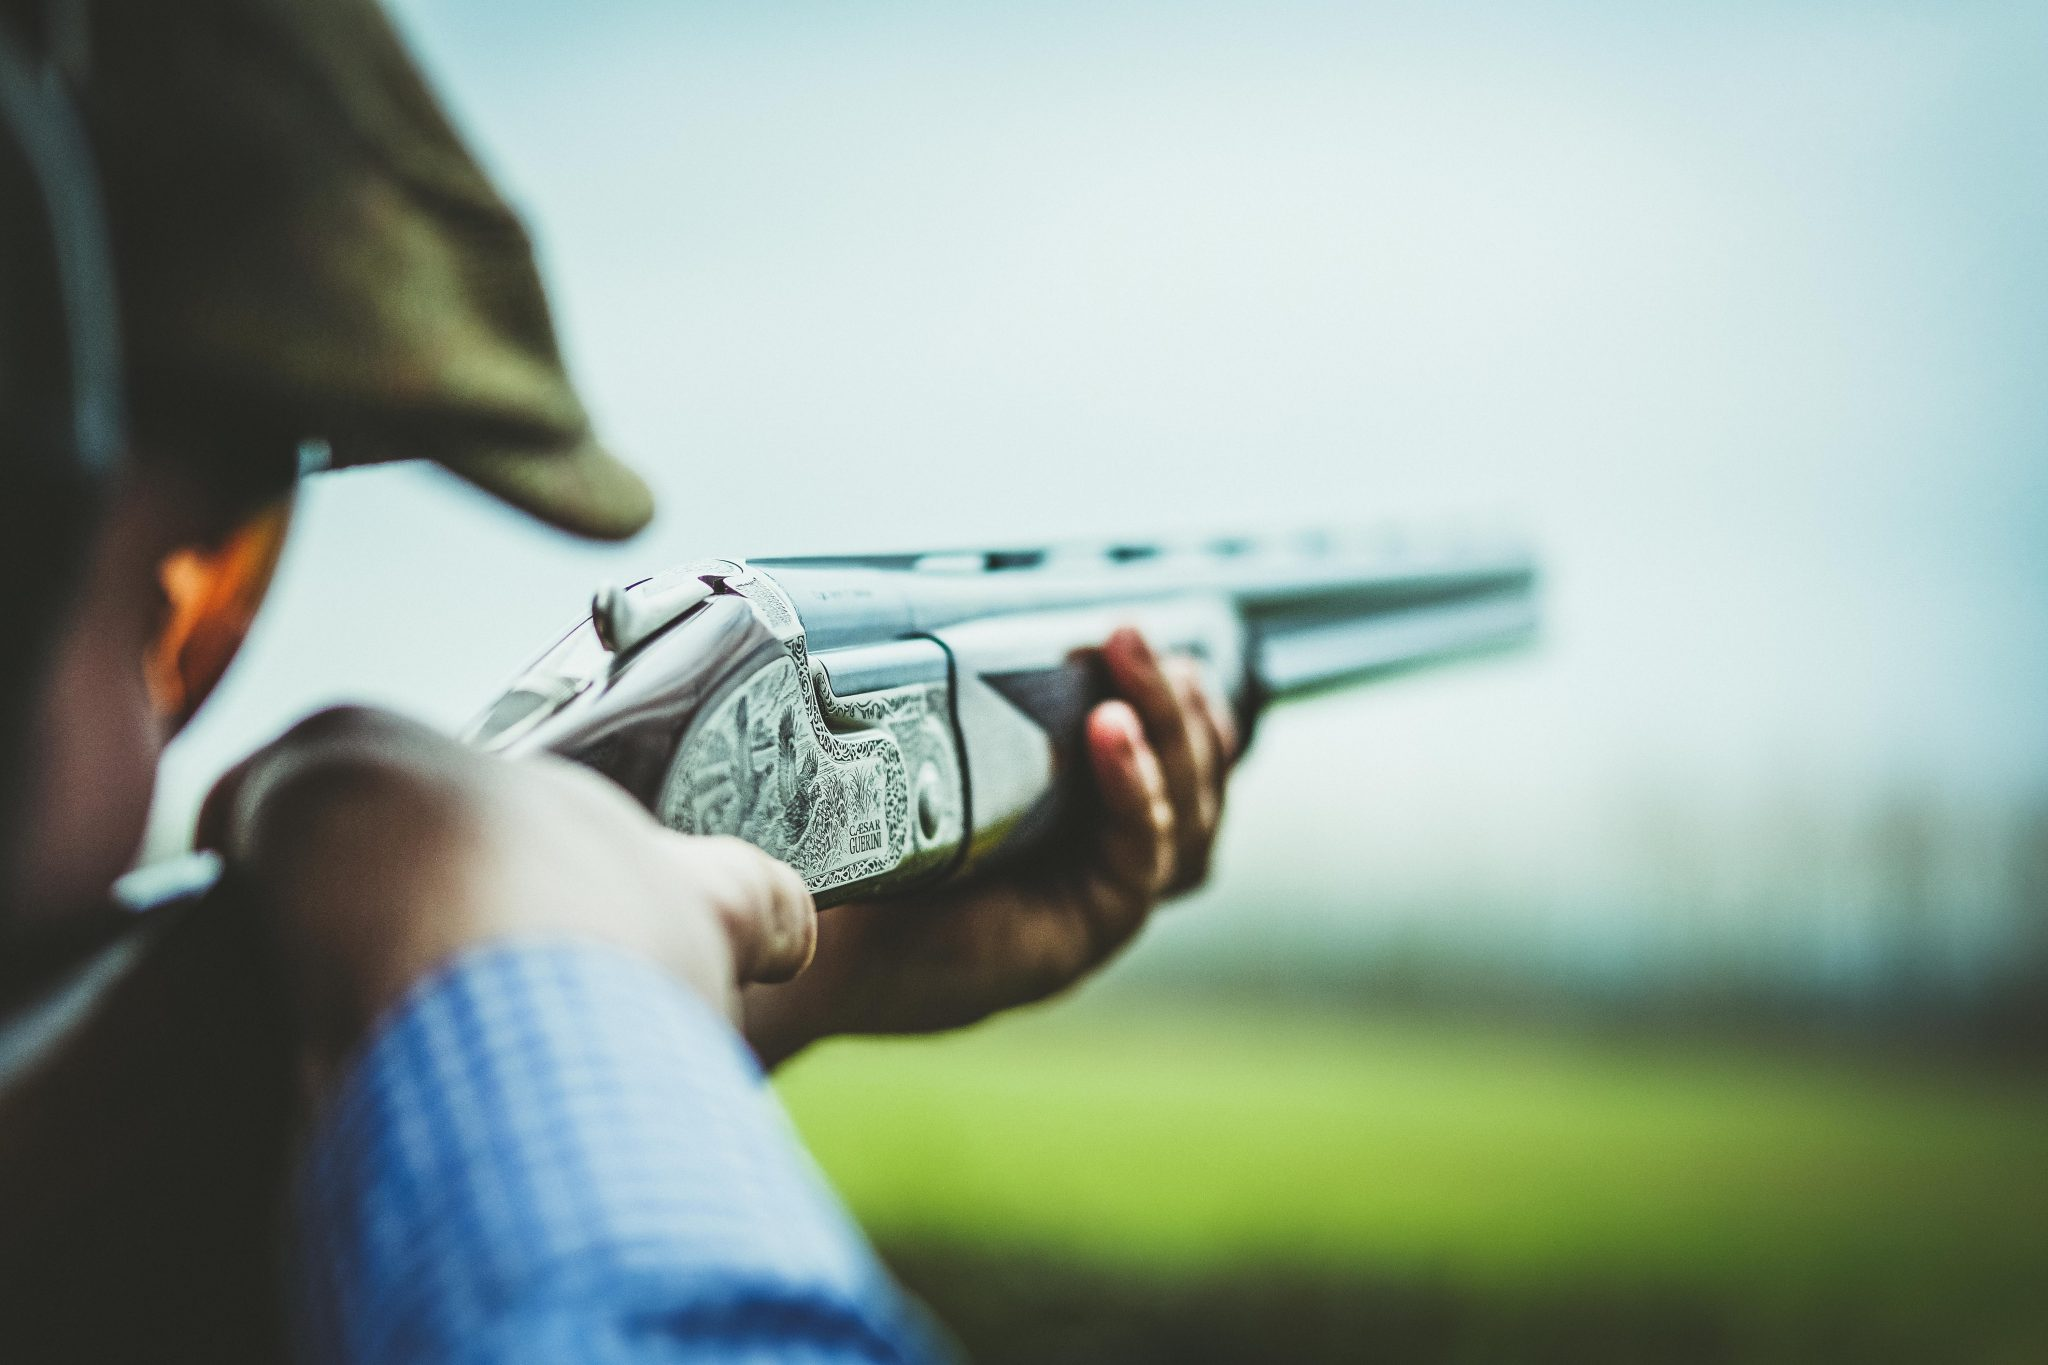 Book your gun fit at Sportarm at Lady's Wood